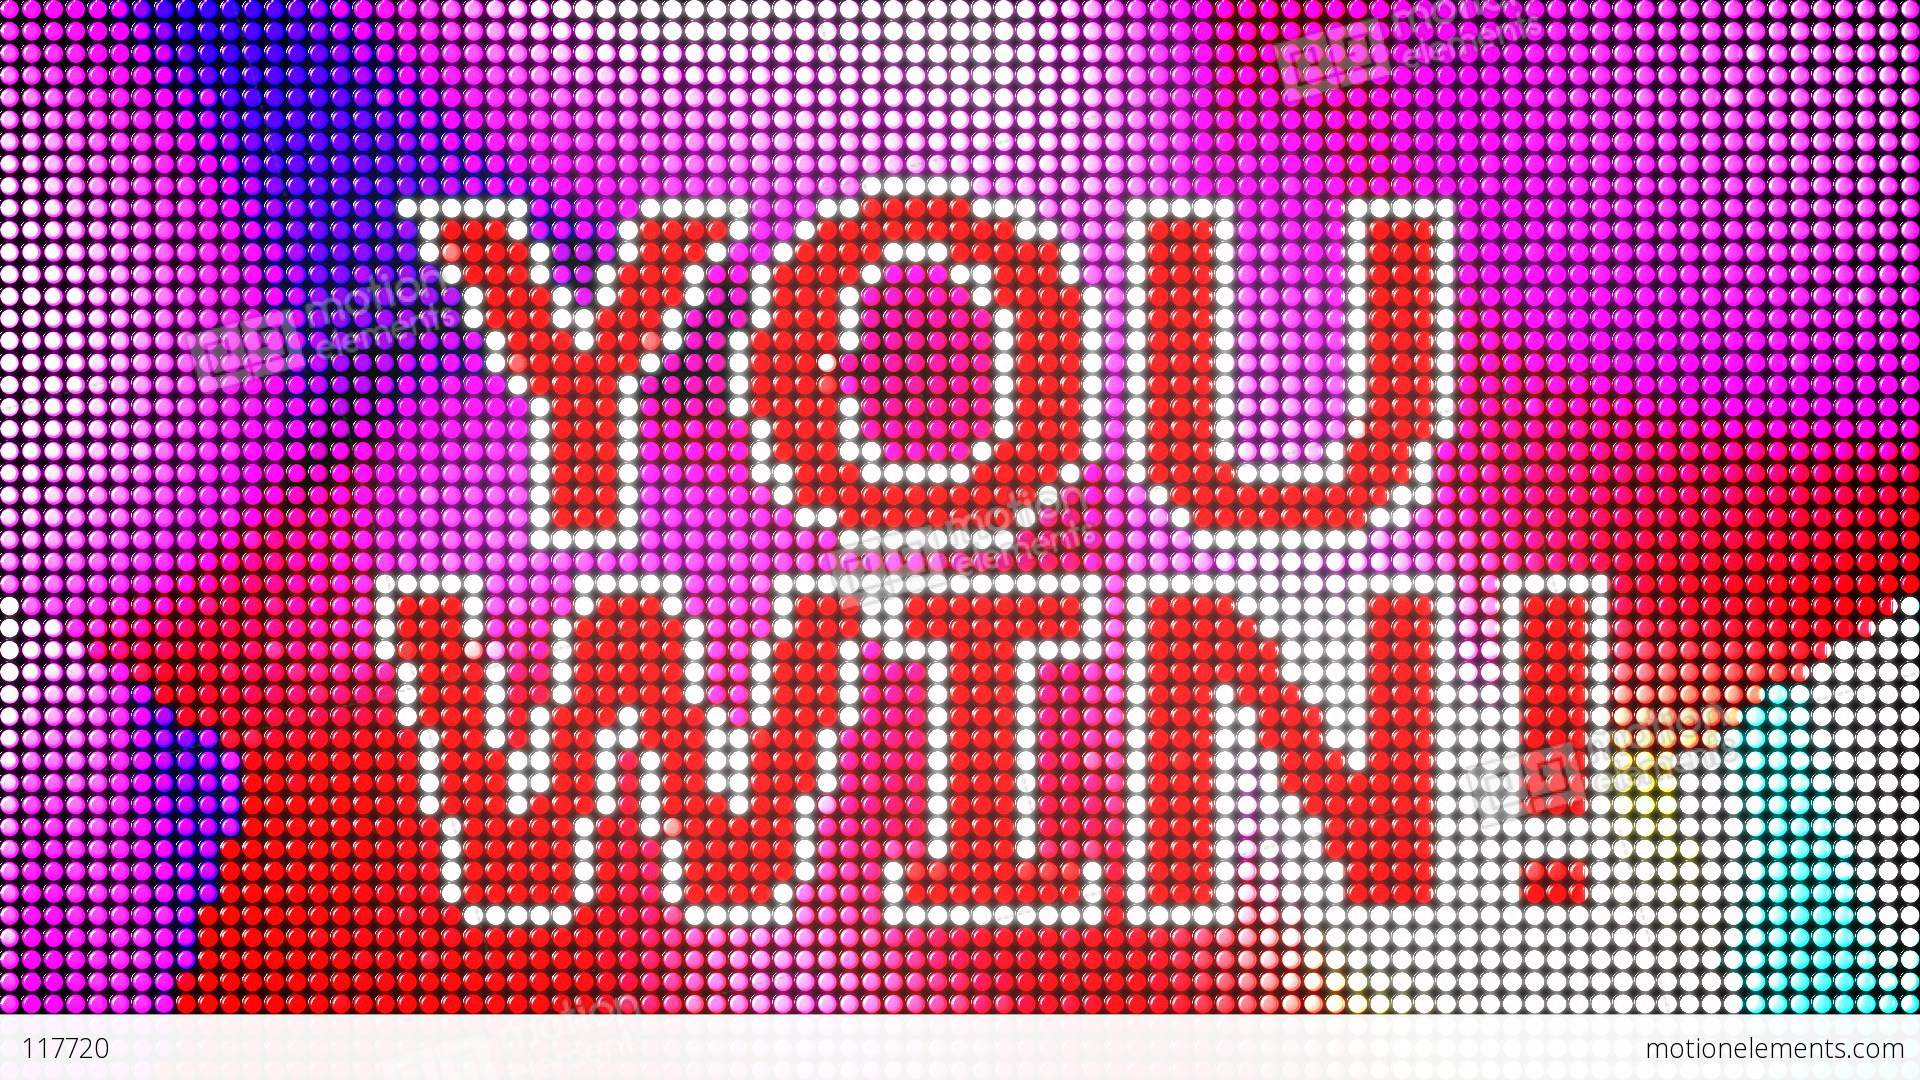 You Win Led Screen Loop Stock Animation | Royalty-Free Stock Animation ...